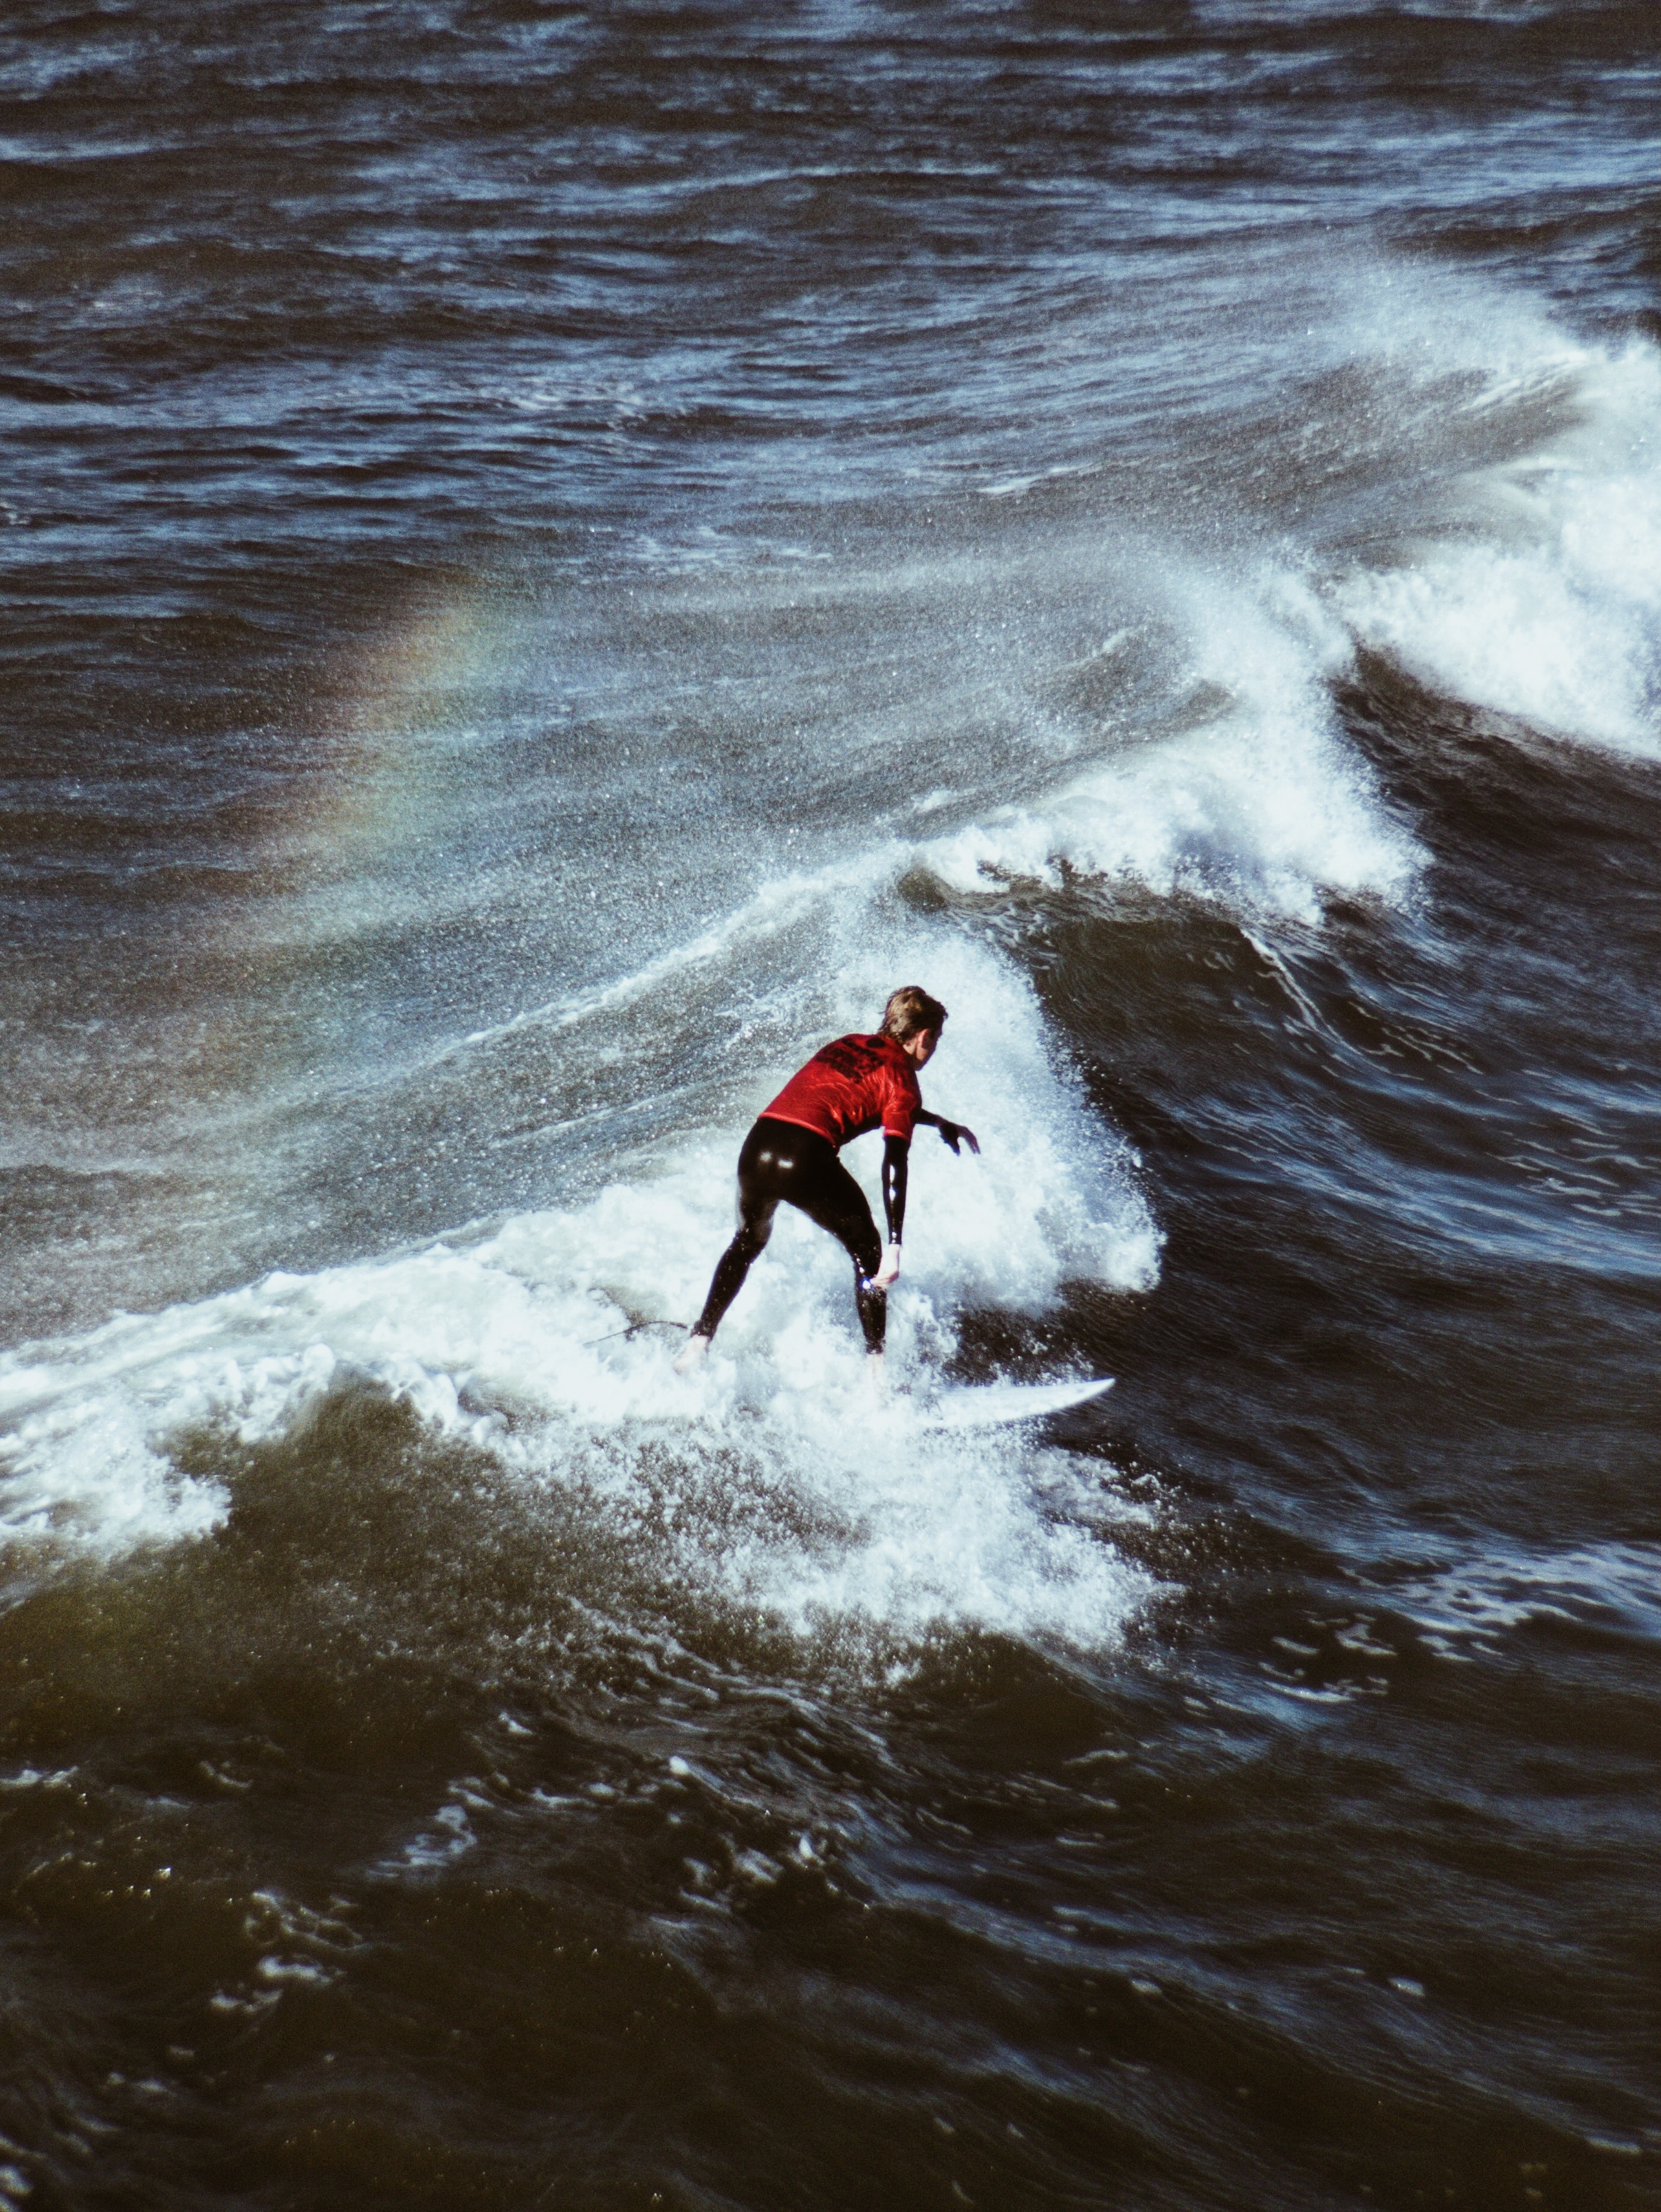 man riding surfboard on sea waves